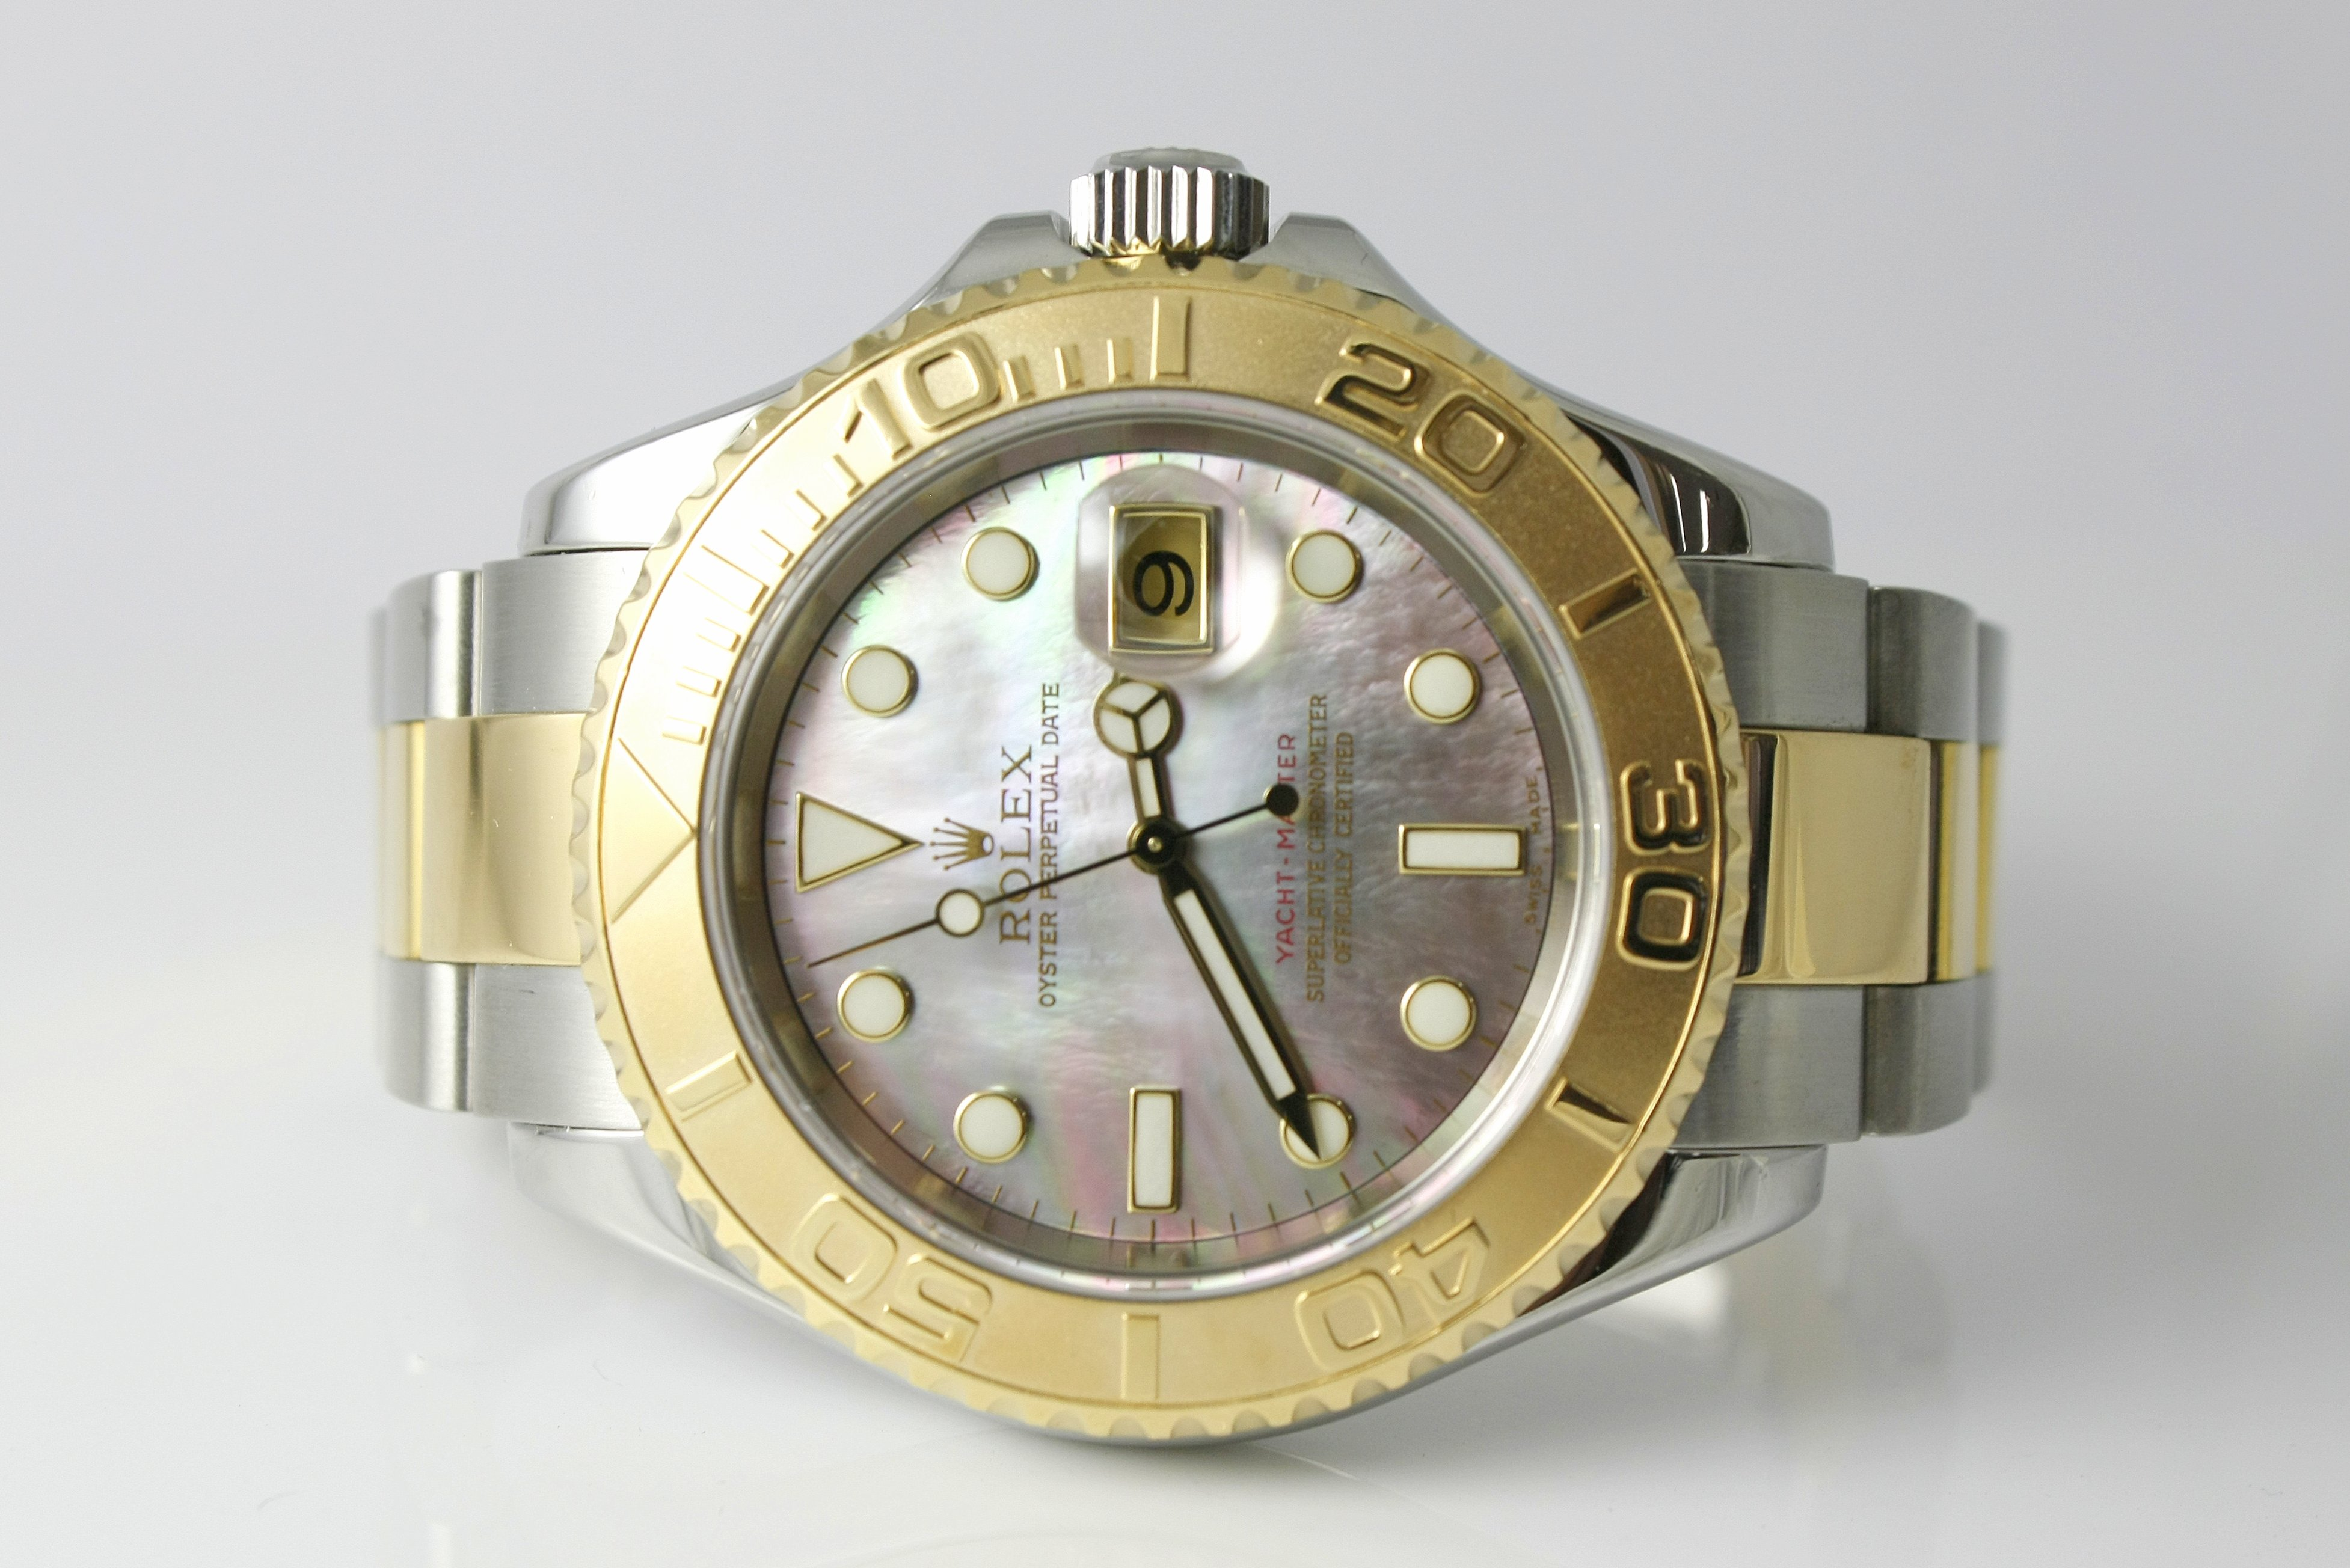 Rolex Yacht-Master Two-Tone - $8,900